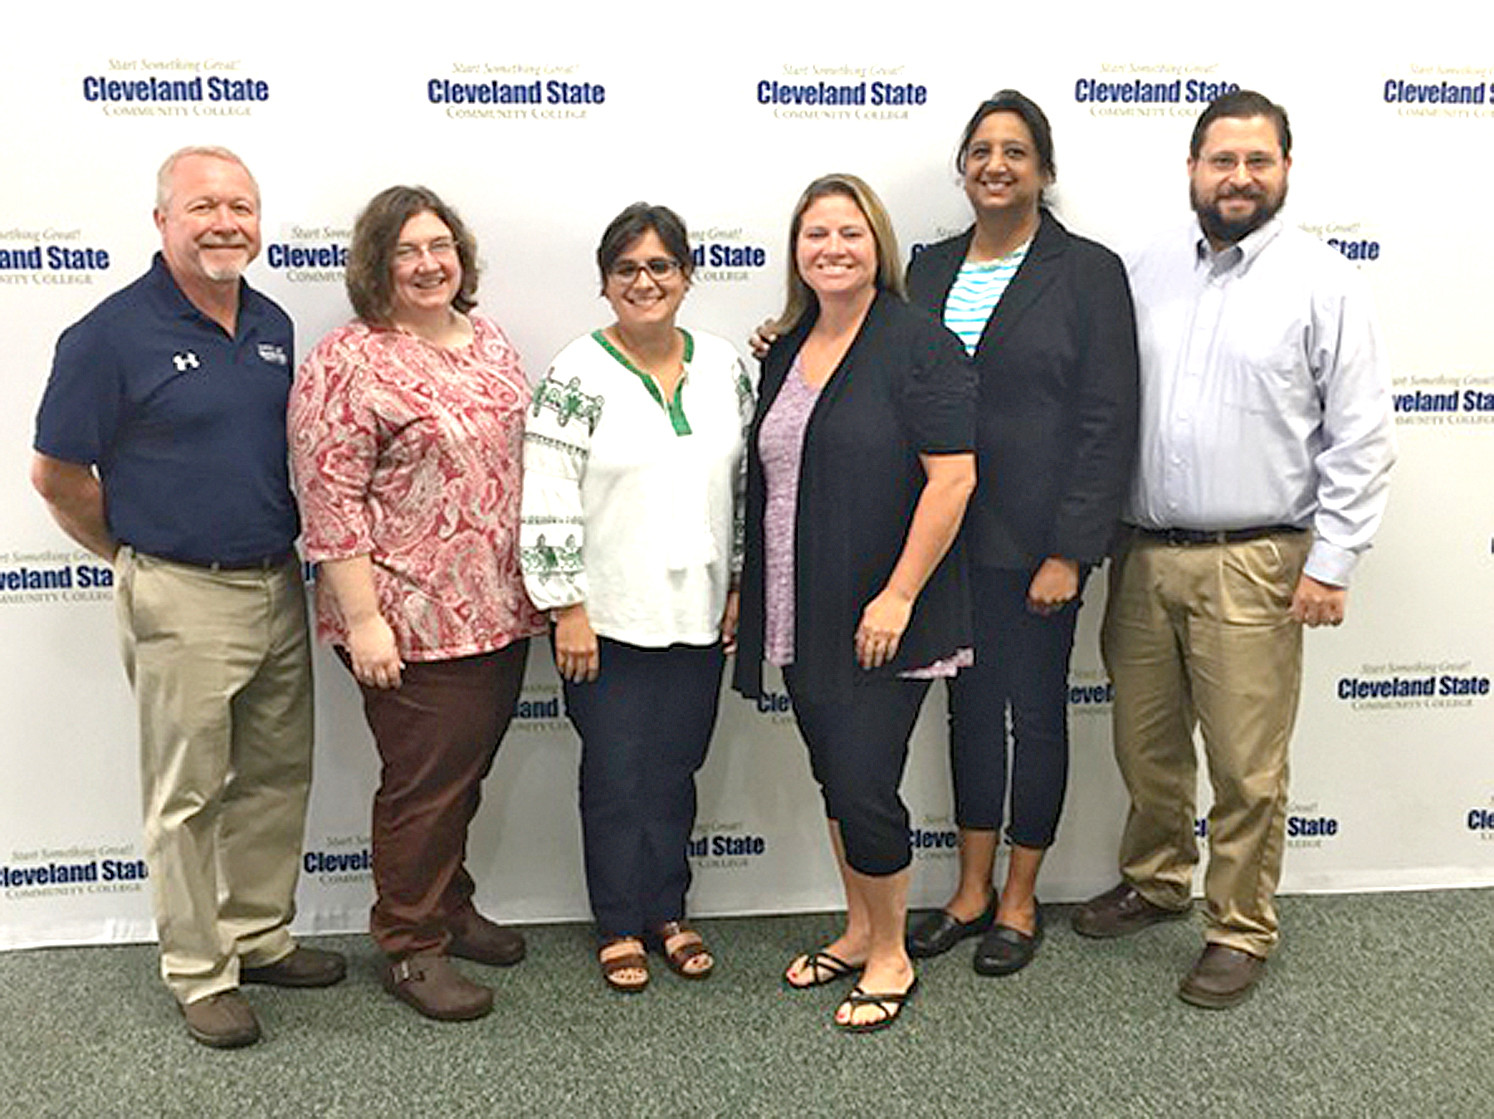 Several CSCC employees received awards for their recent promotions. From left are Darrell Oakley, assistant professor; Jenny Eble, associate professor; Rebecca Riggs, associate professor; Candace Patterson, associate professor; Maureen Baksh-Griffin, associate professor; and Stephen Hays, professor. Dr. Tim Wilson, associate professor, was not available for the photo.